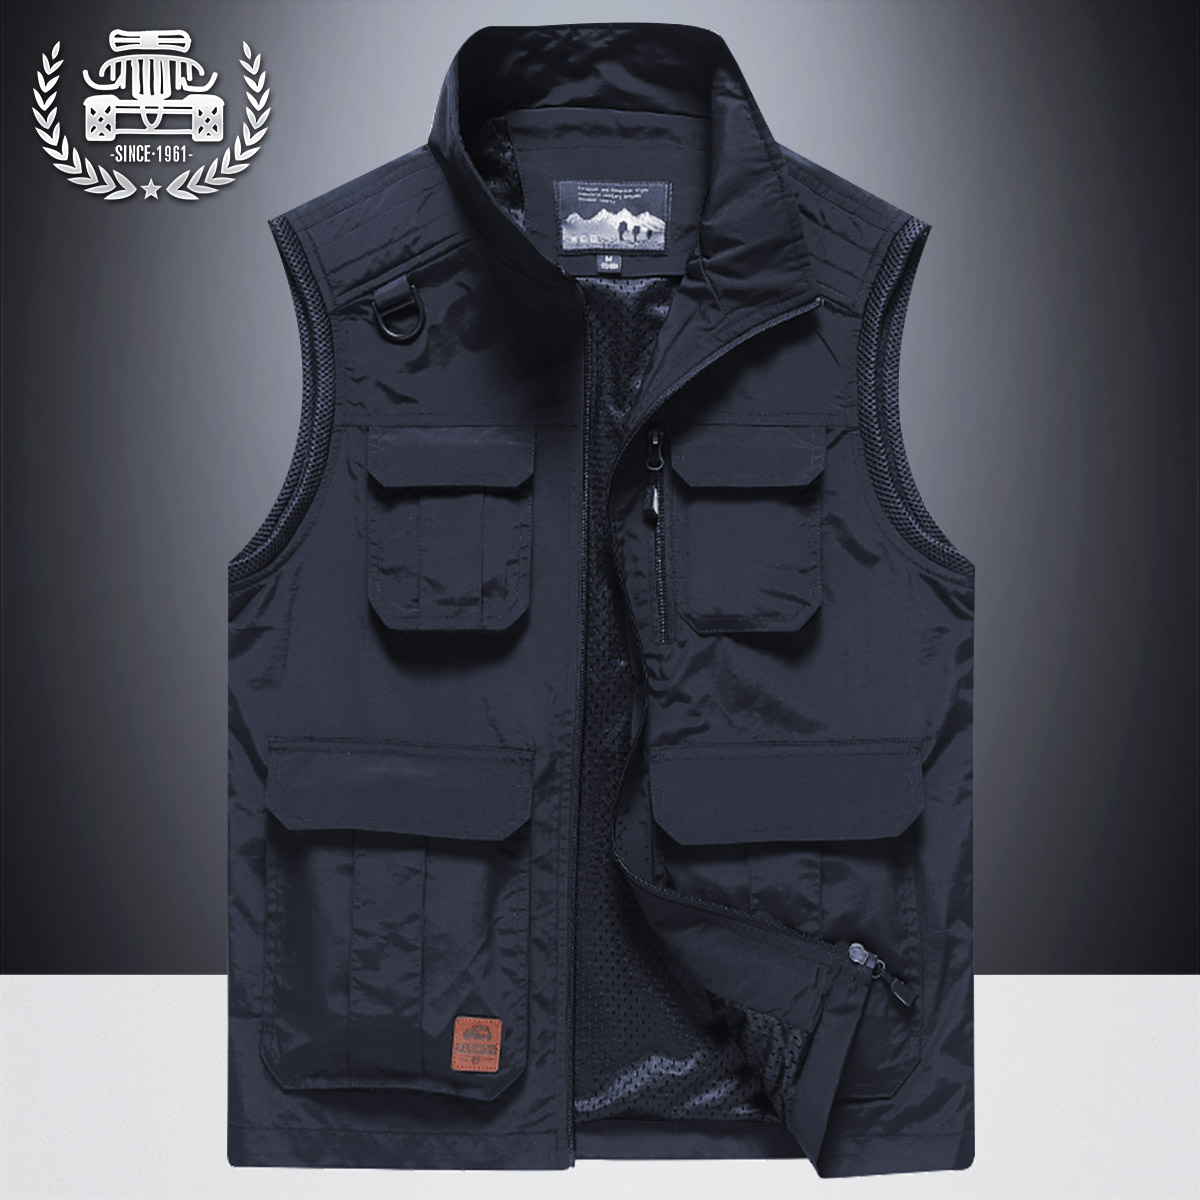 Majia men's spring and autumn 2020 new warm vest thickened fishing photography sleeveless Camisole tooling jacket man